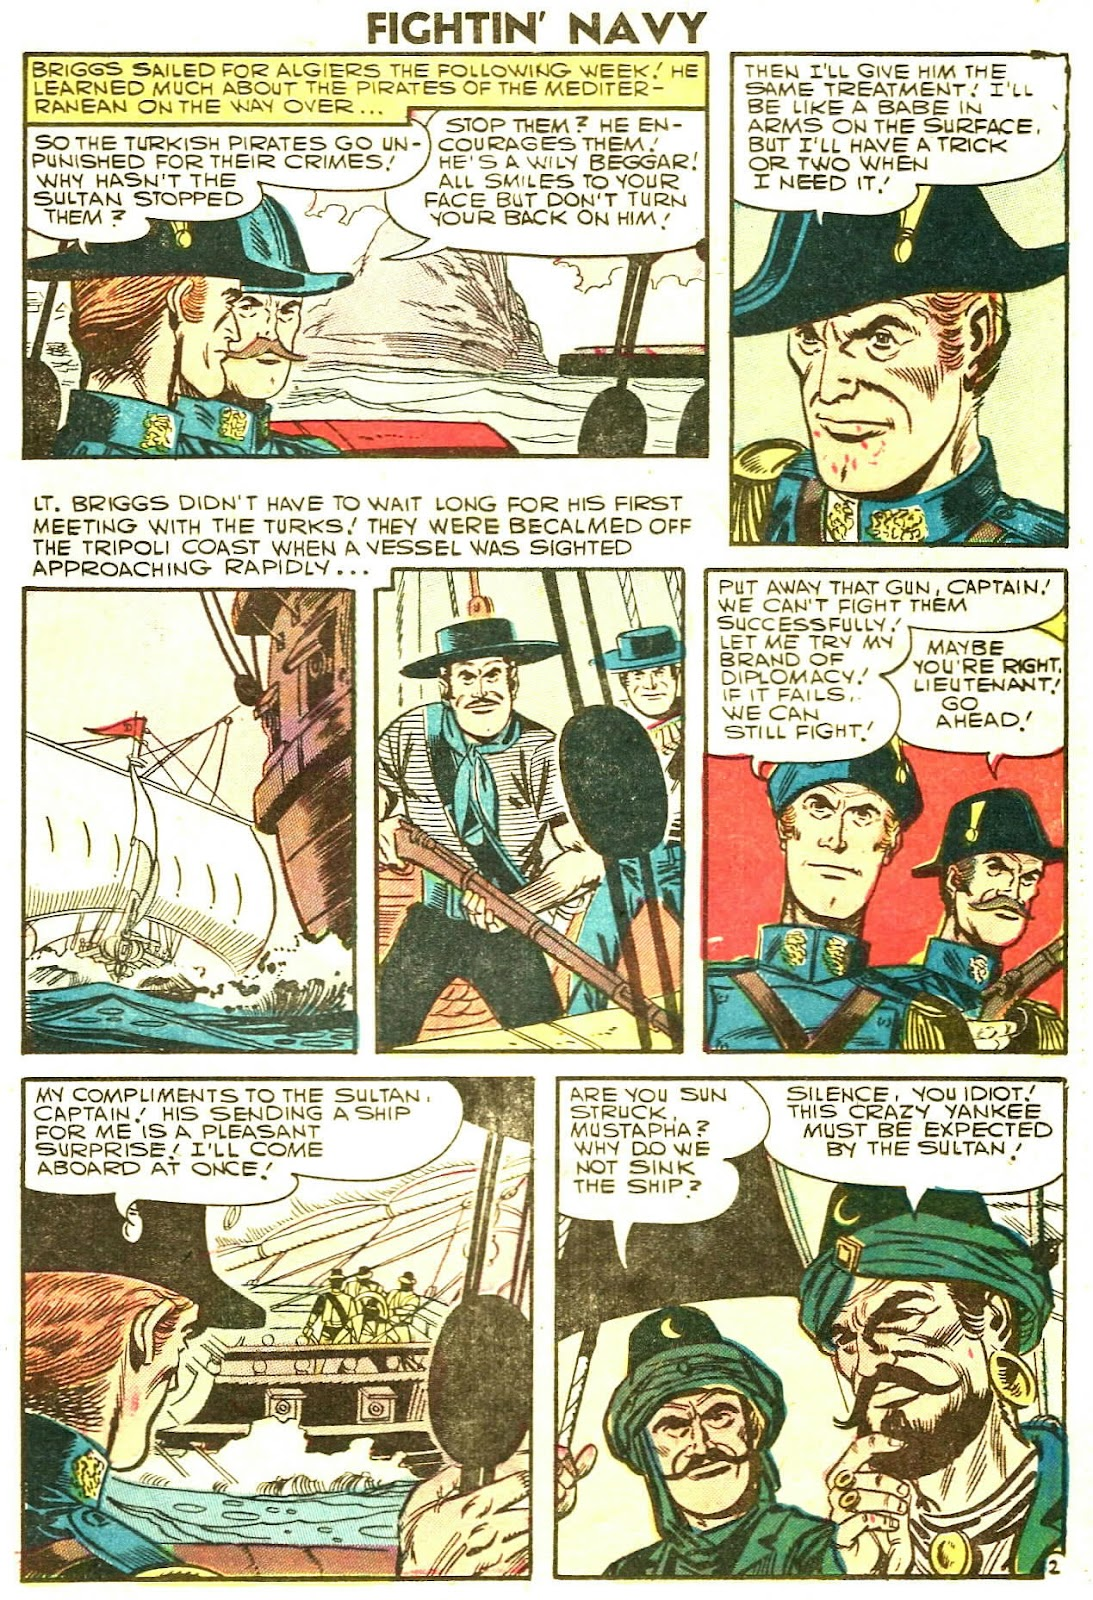 Read online Fightin' Navy comic -  Issue #78 - 25